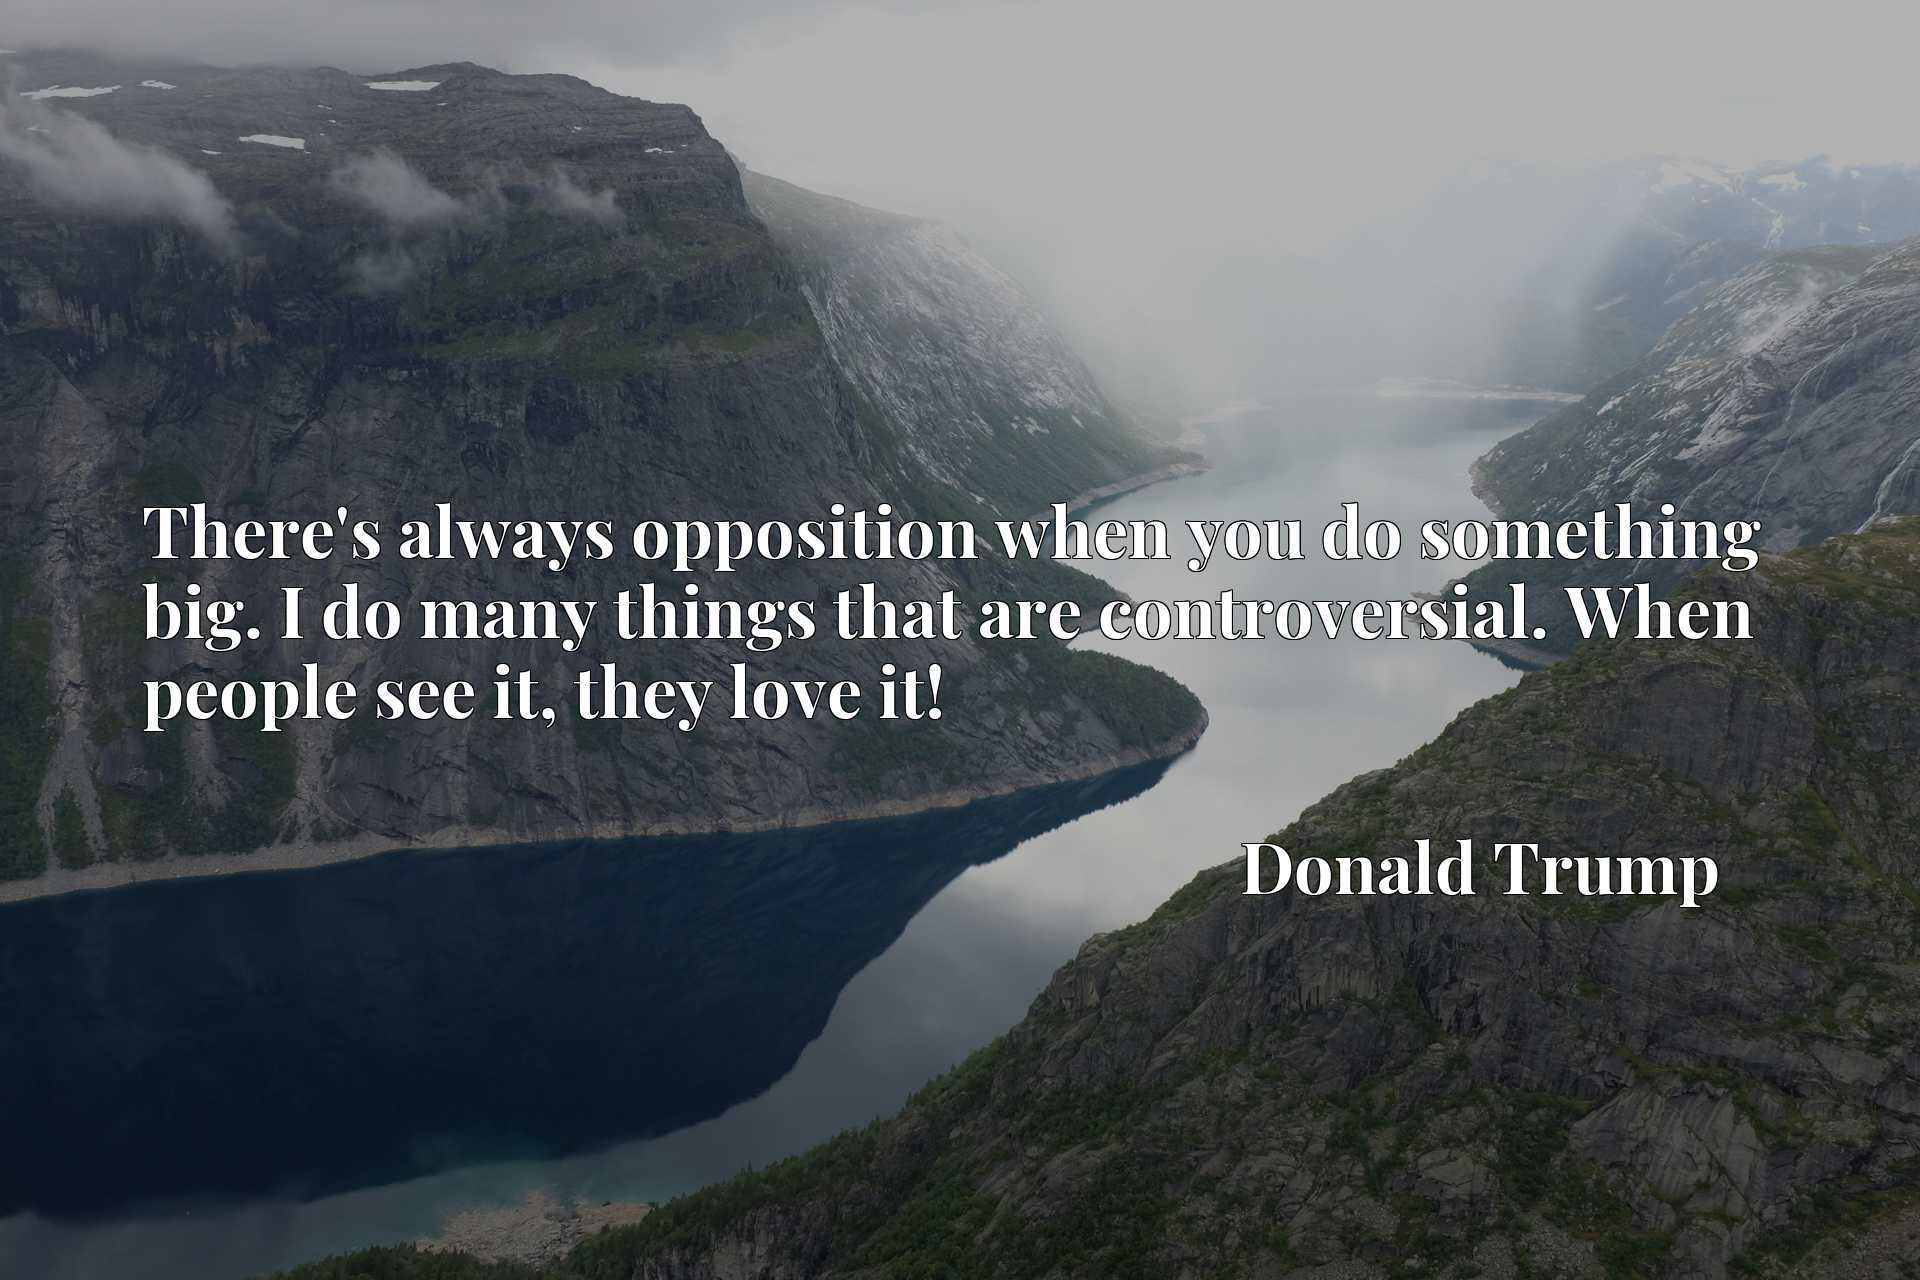 Quote Picture :There's always opposition when you do something big. I do many things that are controversial. When people see it, they love it!